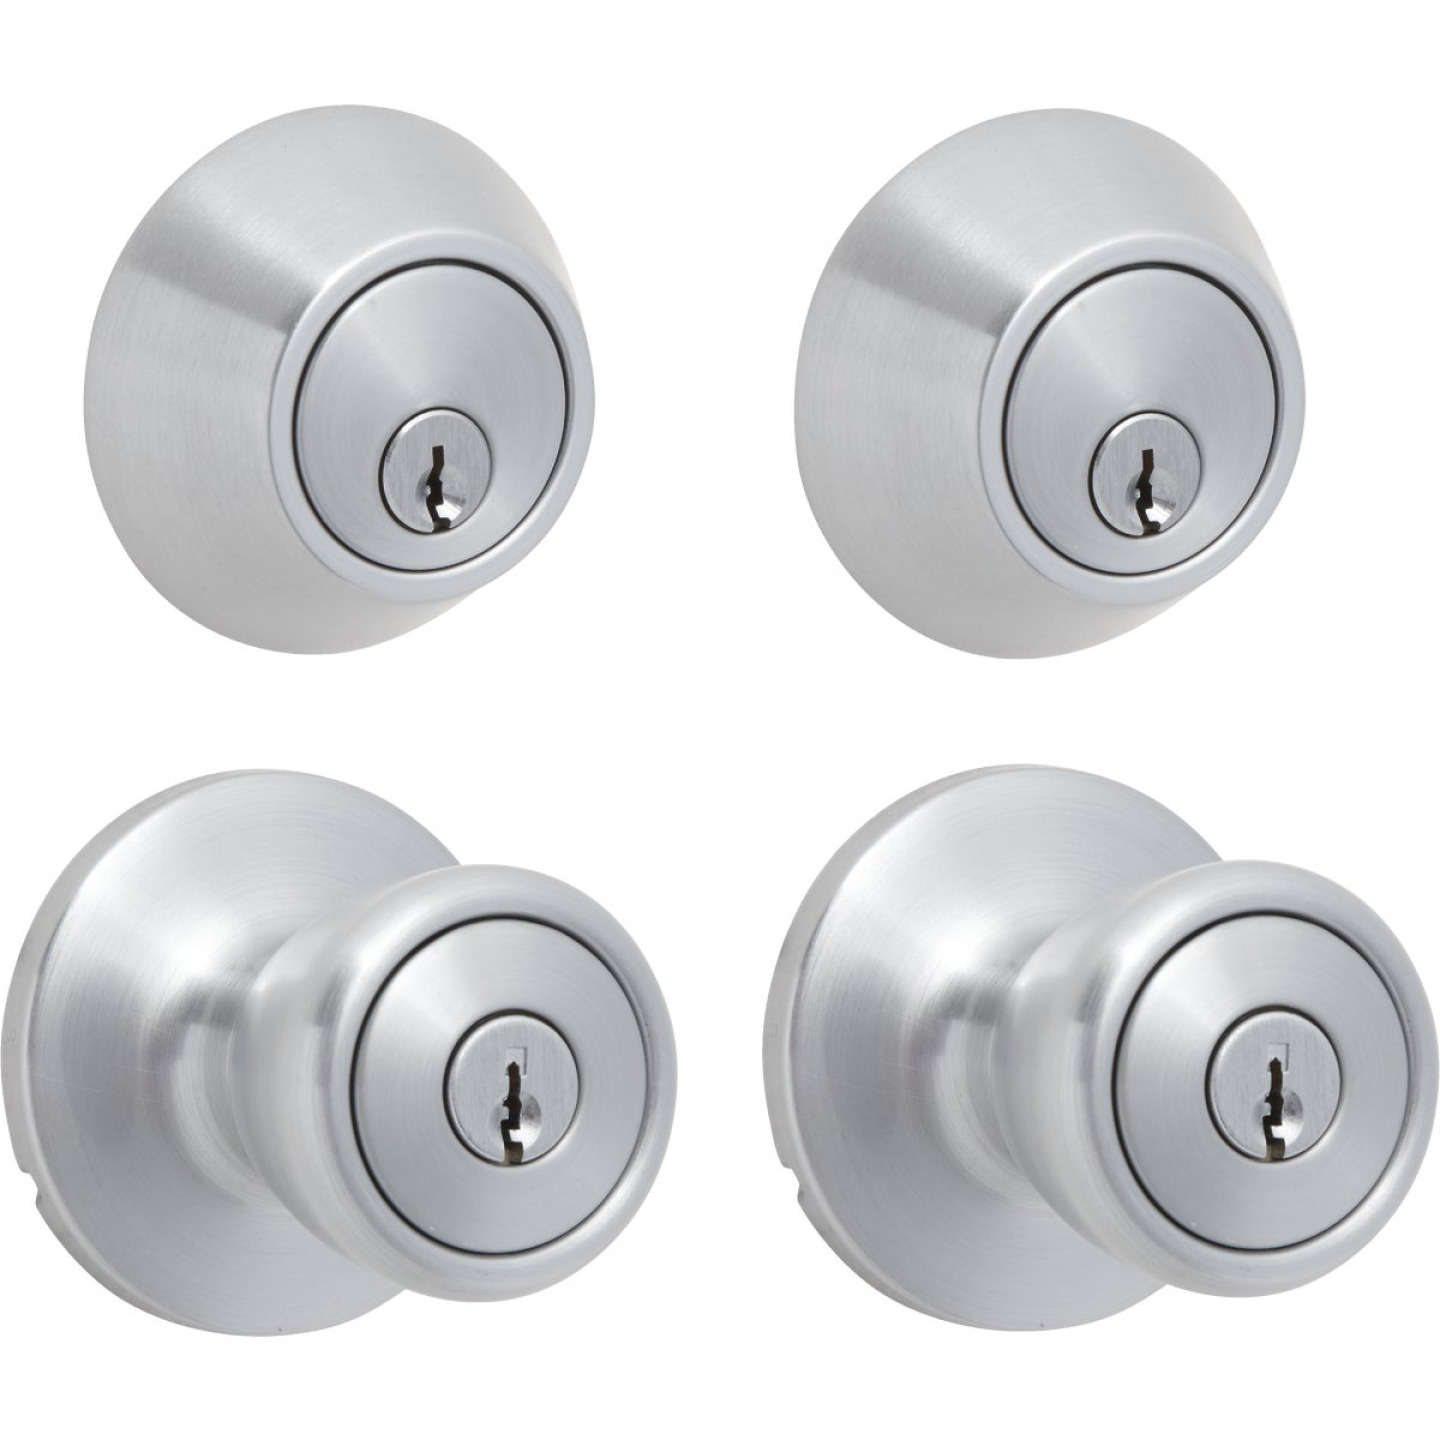 Steel Pro Satin Chrome Deadbolt and Door Knob Combo Image 3